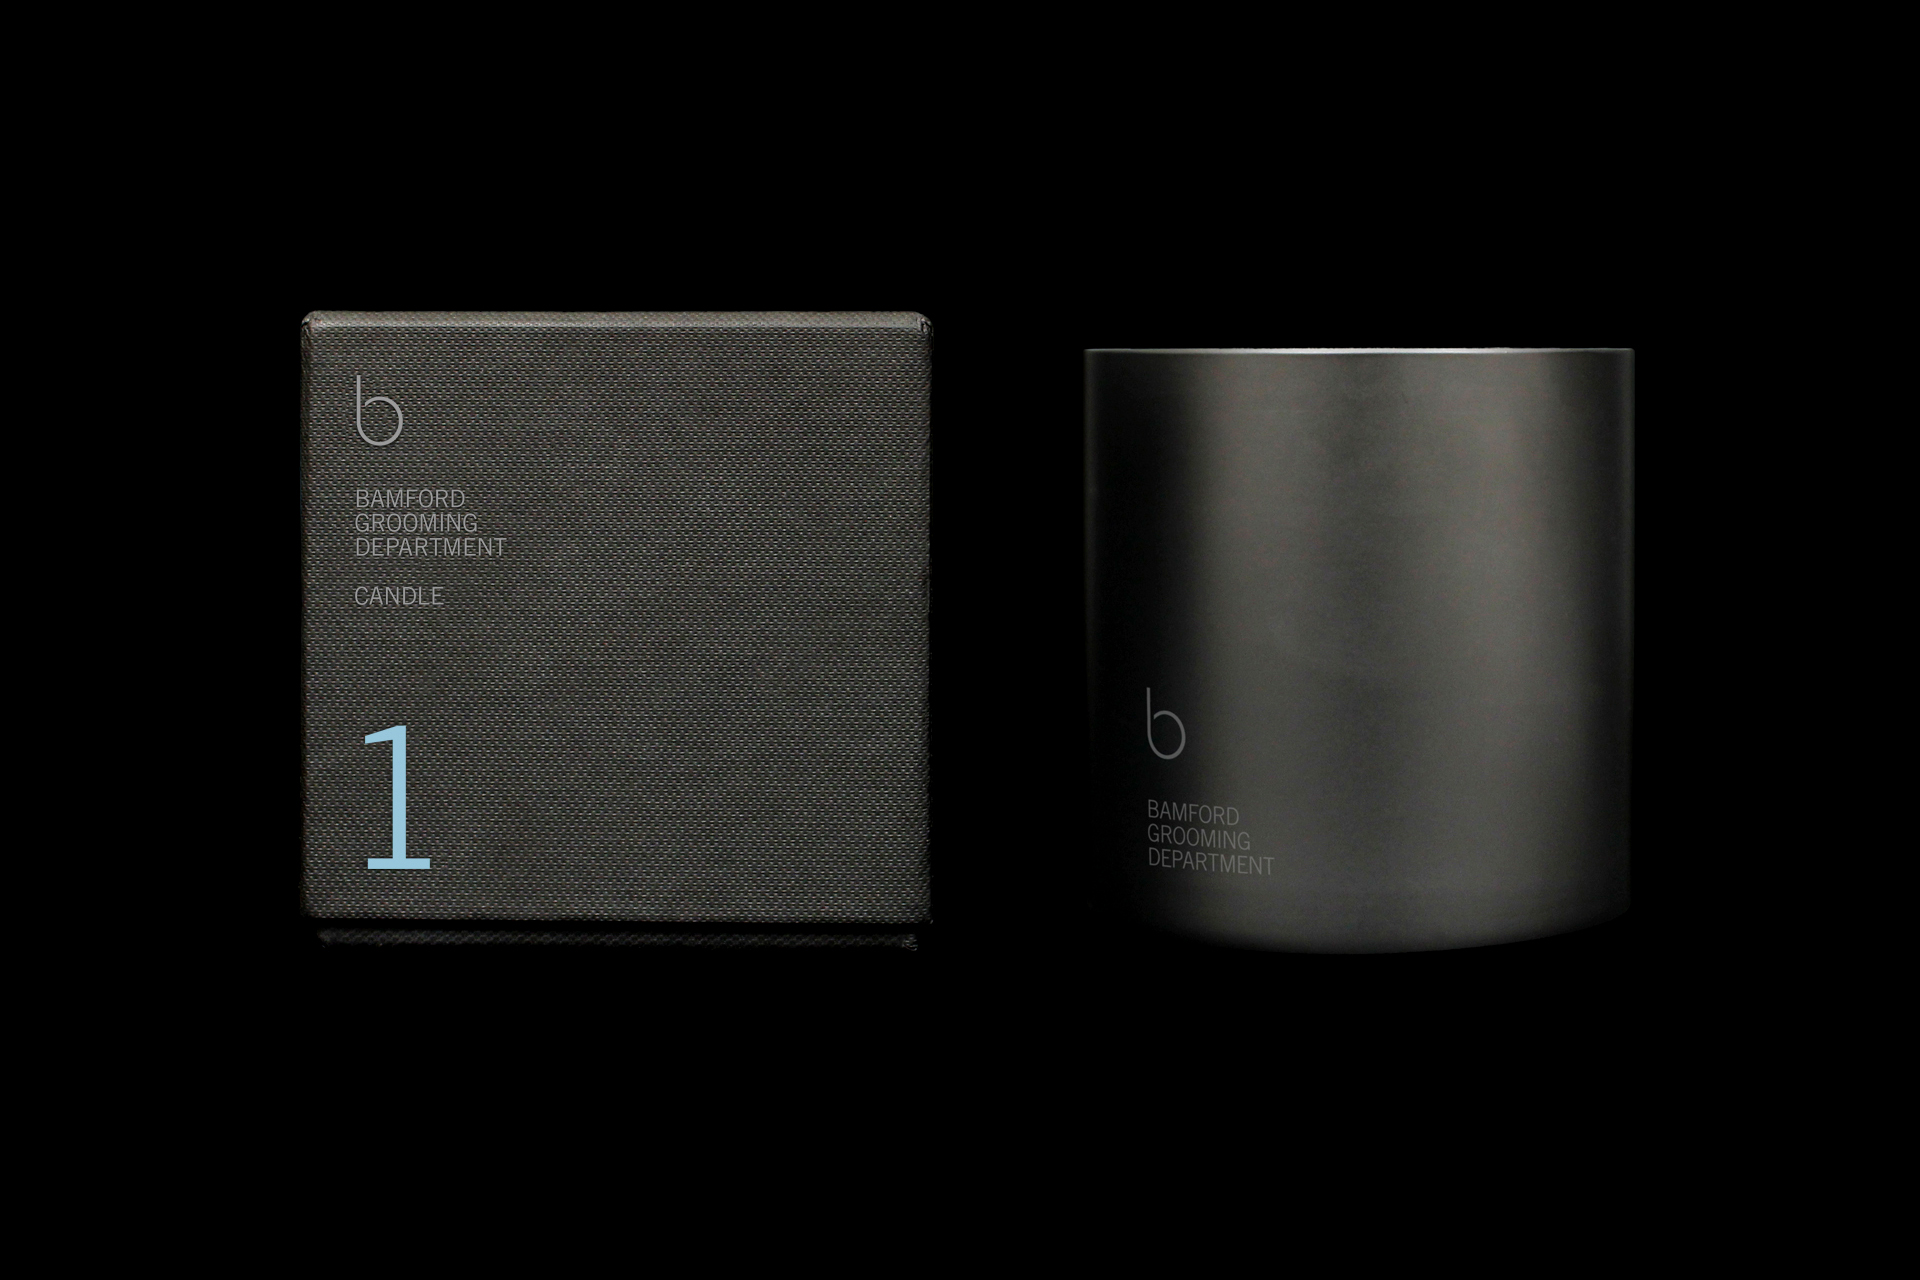 Bamford, Grooming, Department, Products, Agency, Photography, Candle, Macro, George, Organic, Packaging, Silhouette